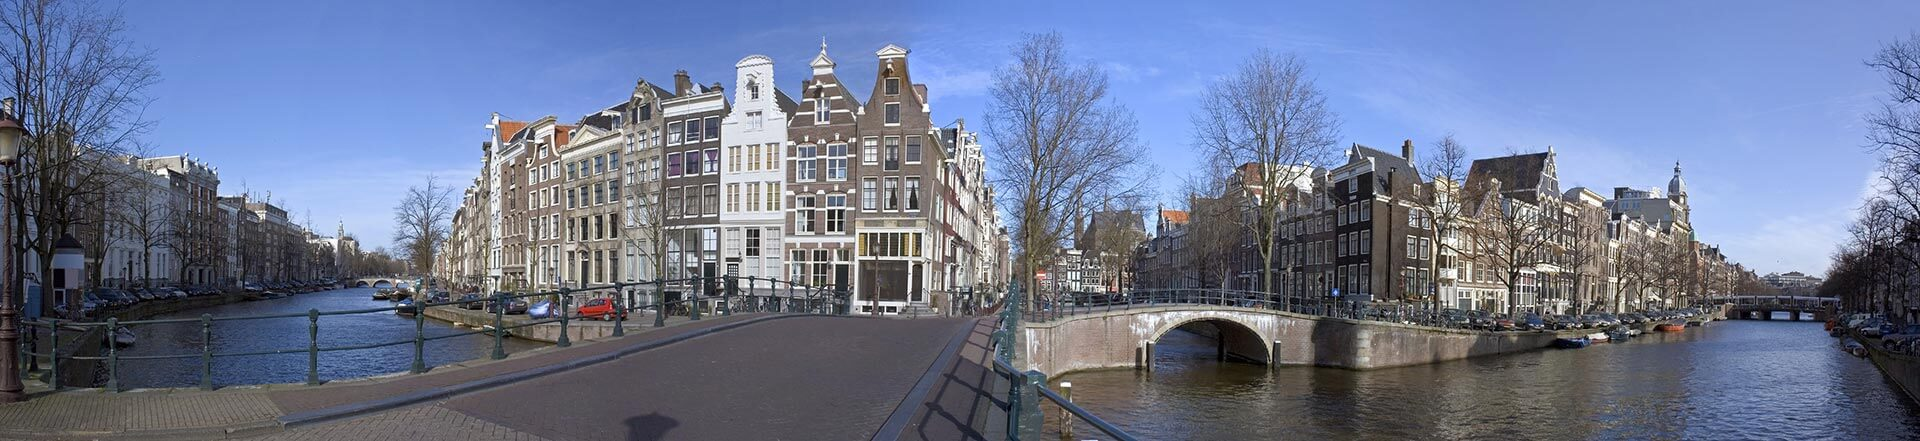 dutch dismissal lawyer amsterdam